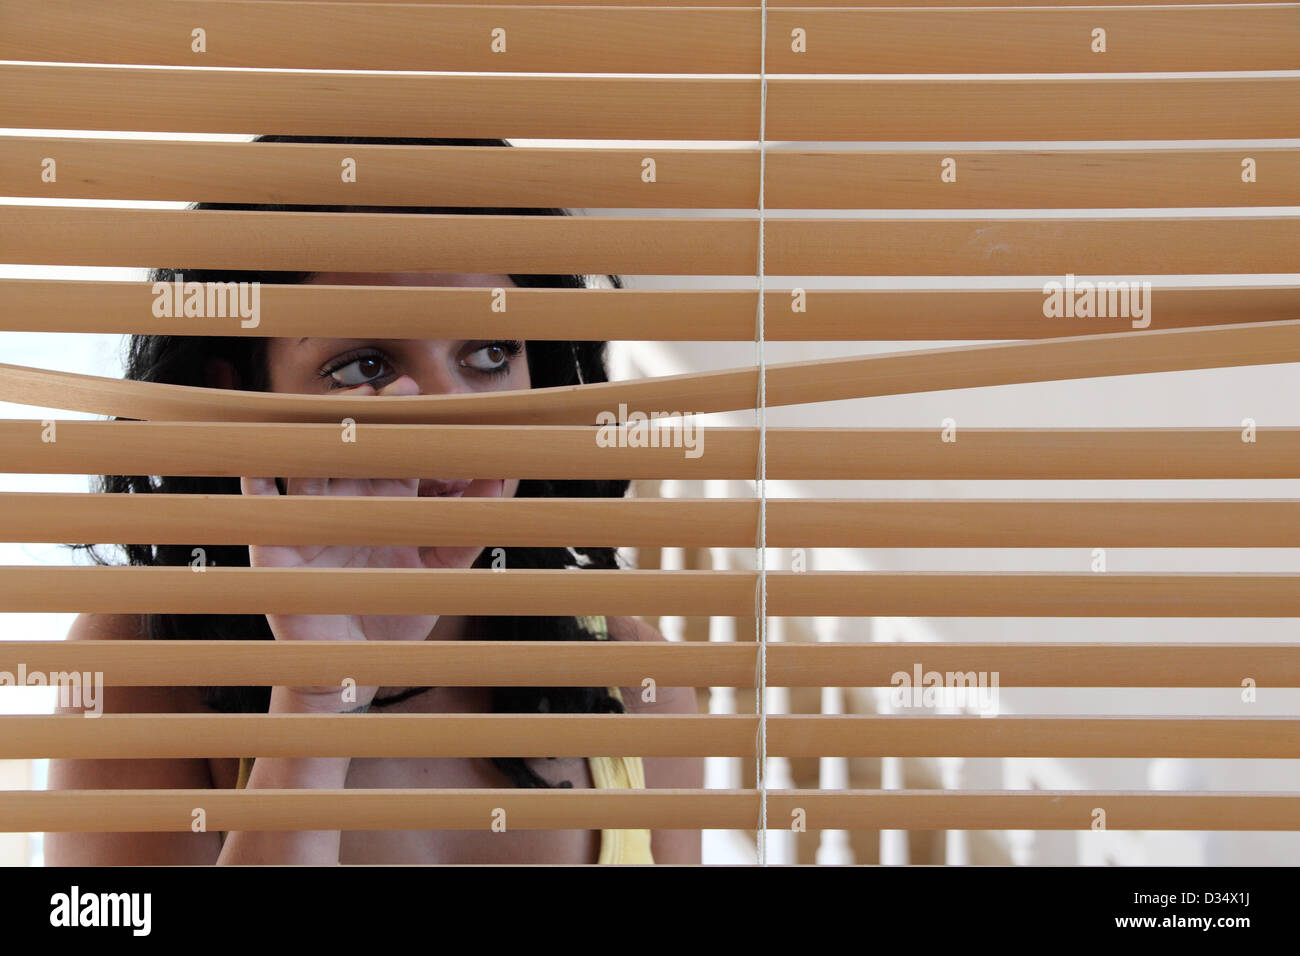 Young dark haired female behind a window blind, looking out of the window. - Stock Image